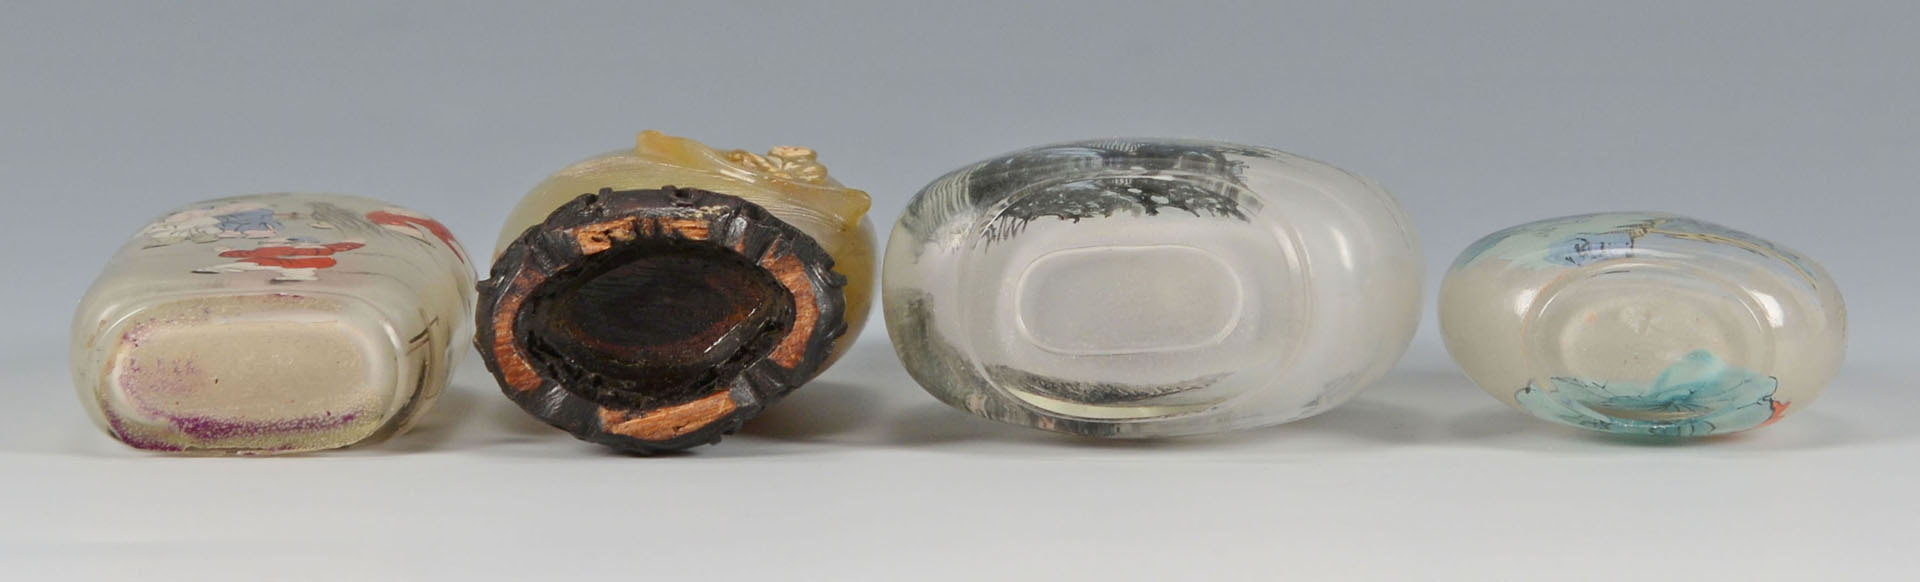 Lot 440: 4 Chinese Glass Snuff Bottles